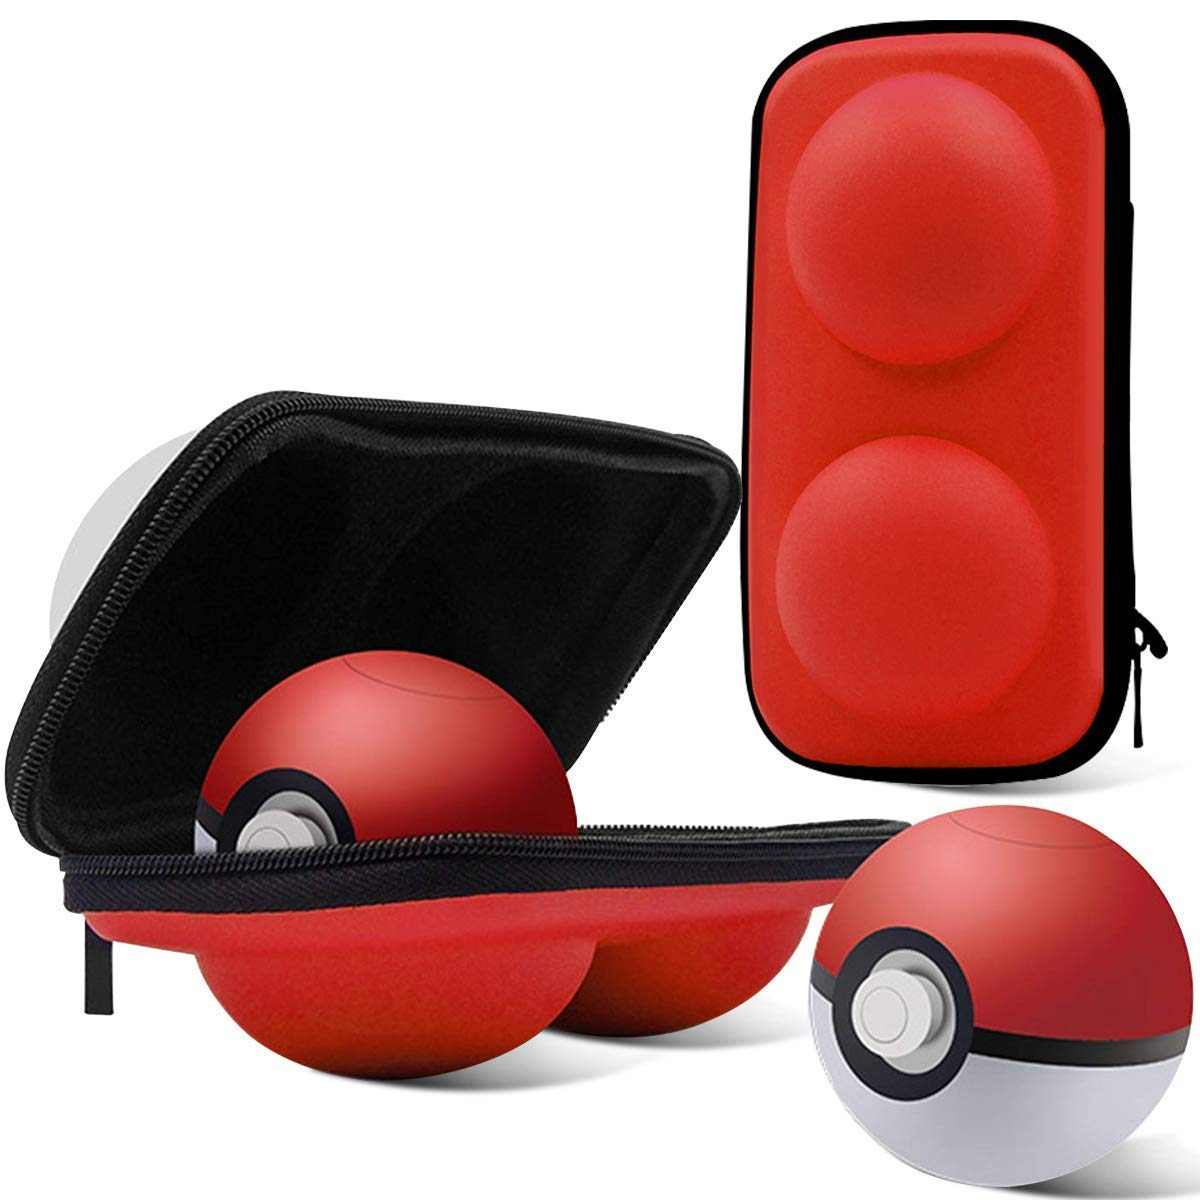 Portable Carrying Case for Nintendo Switch Poke Ball Plus Controller, Accessory Bag for Pokémon Lets Go Pikachu Eevee Game for Nintendo Switch Black: Amazon.es: Videojuegos